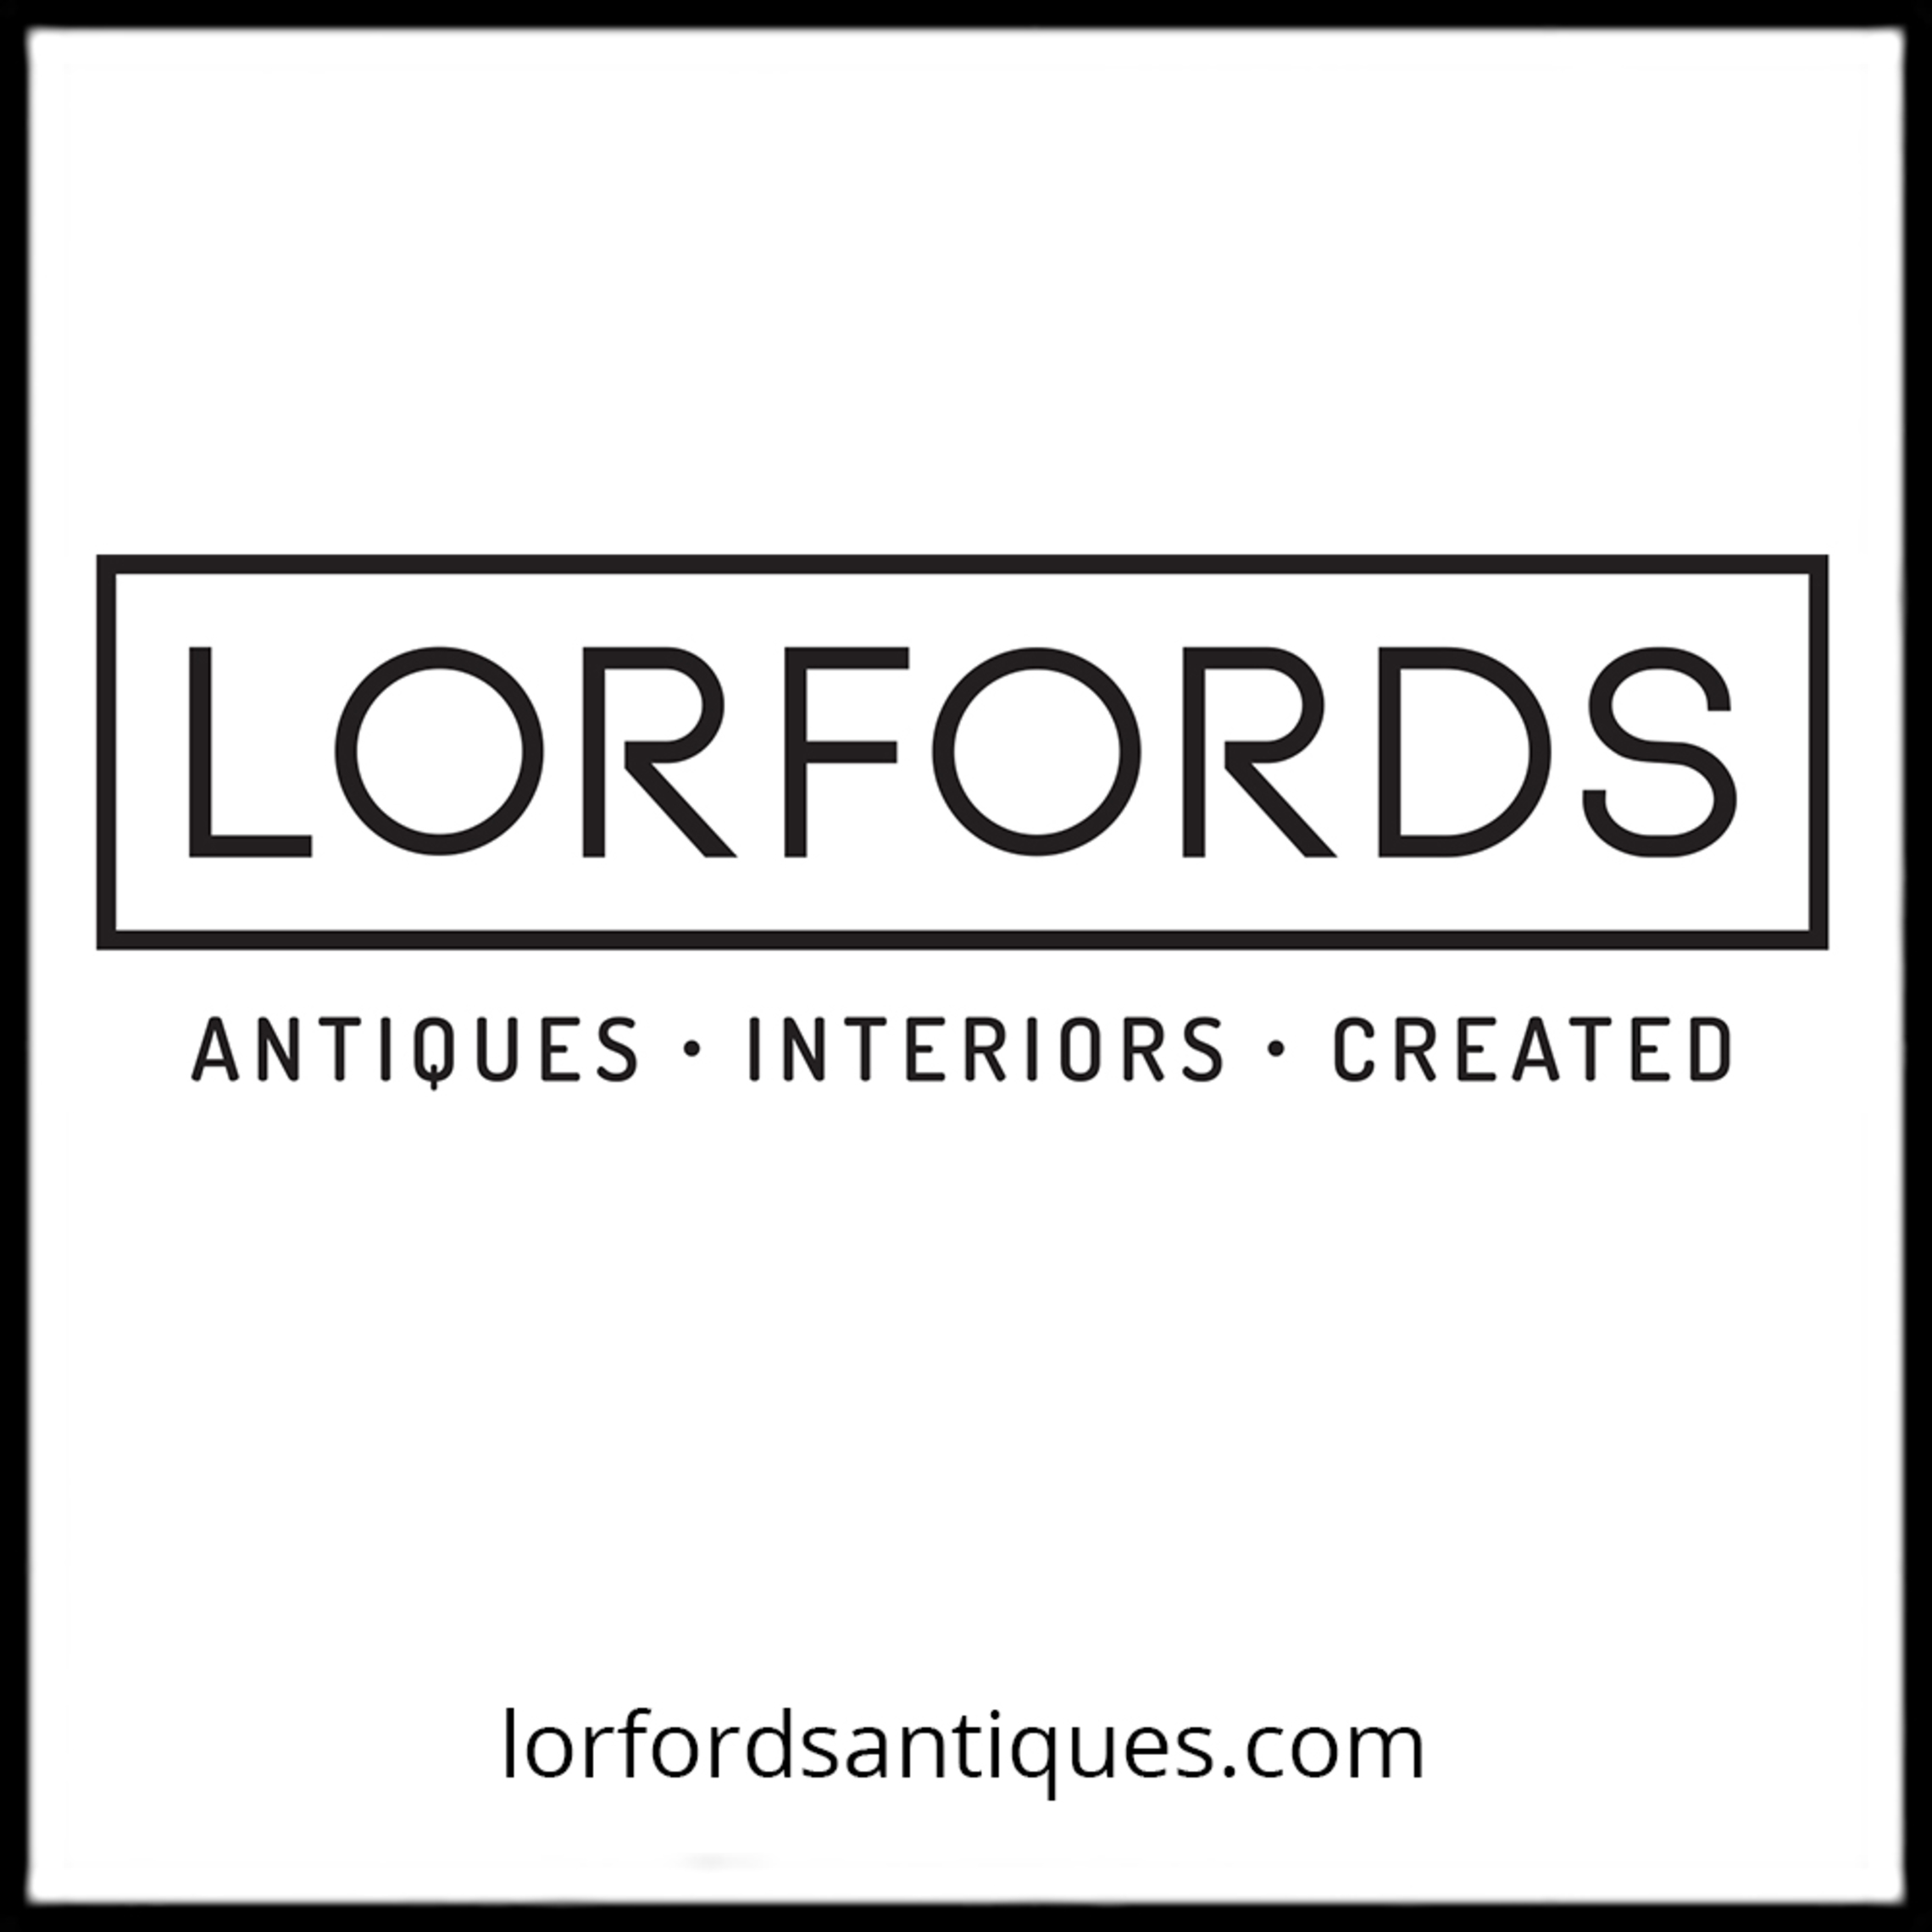 lorfords antiques- company logo